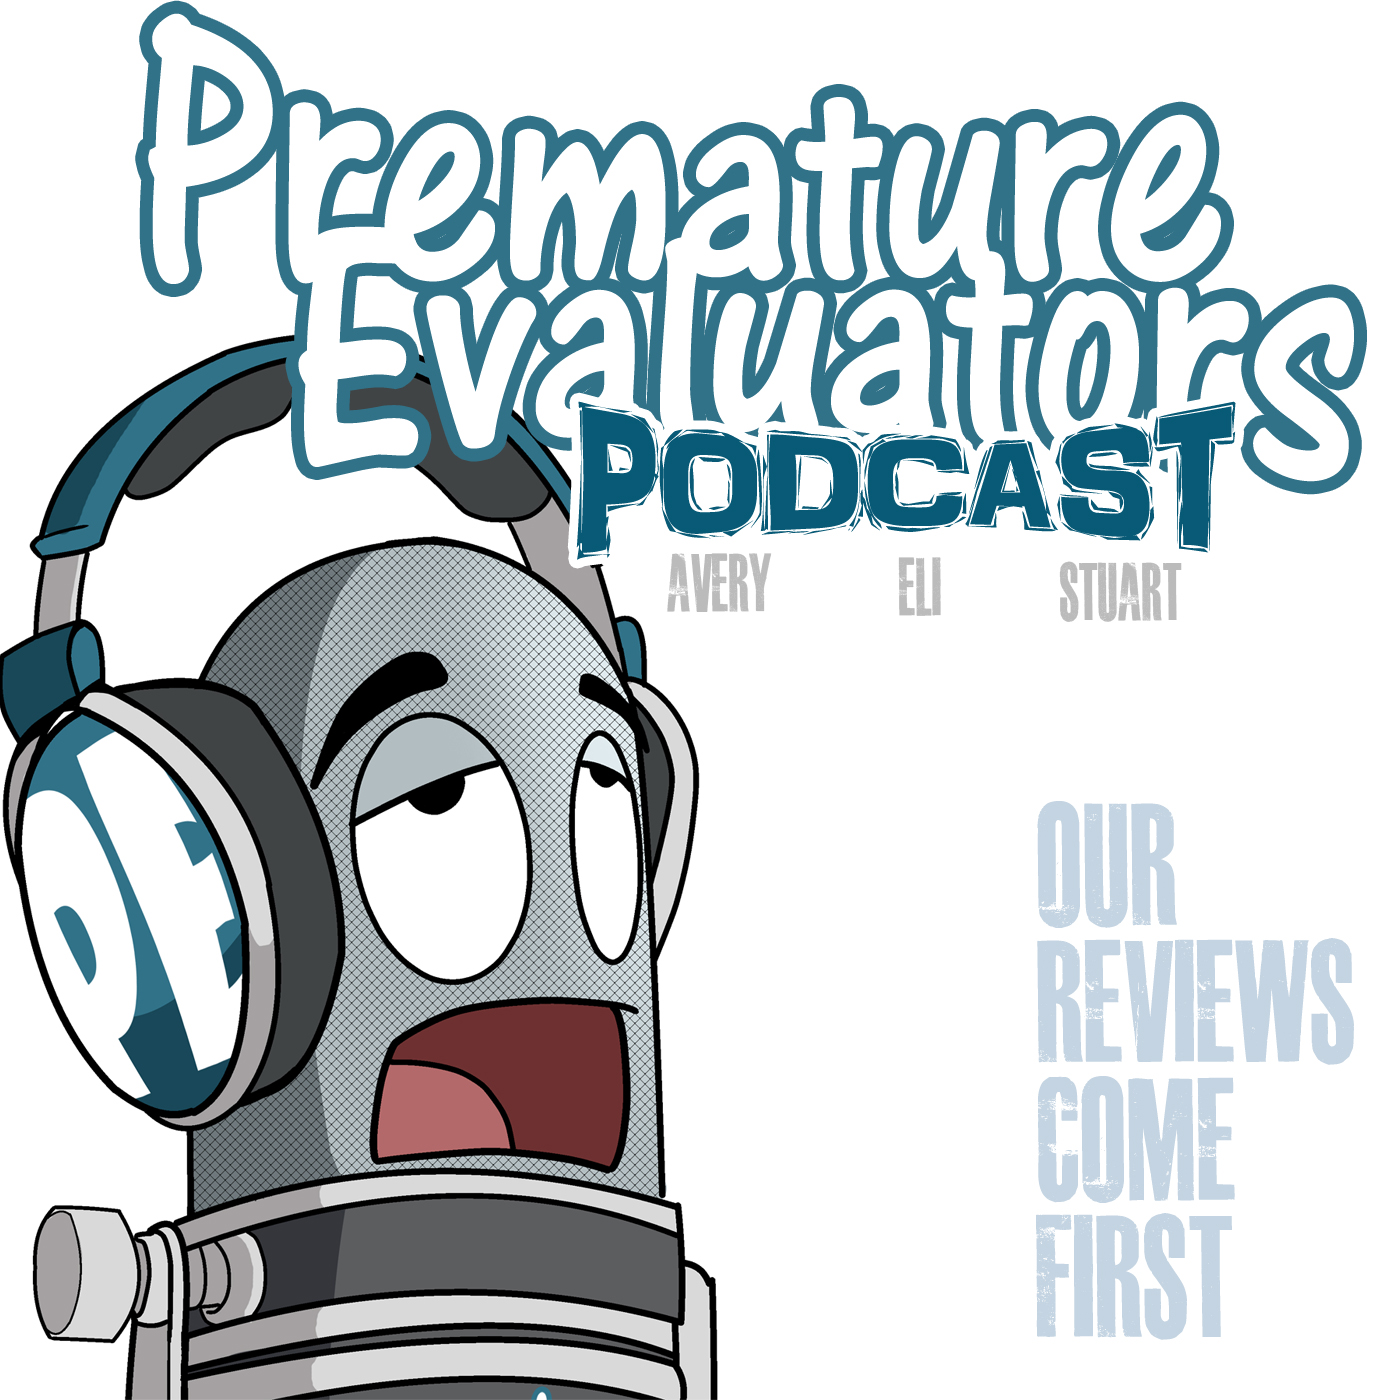 Premature Evaluators